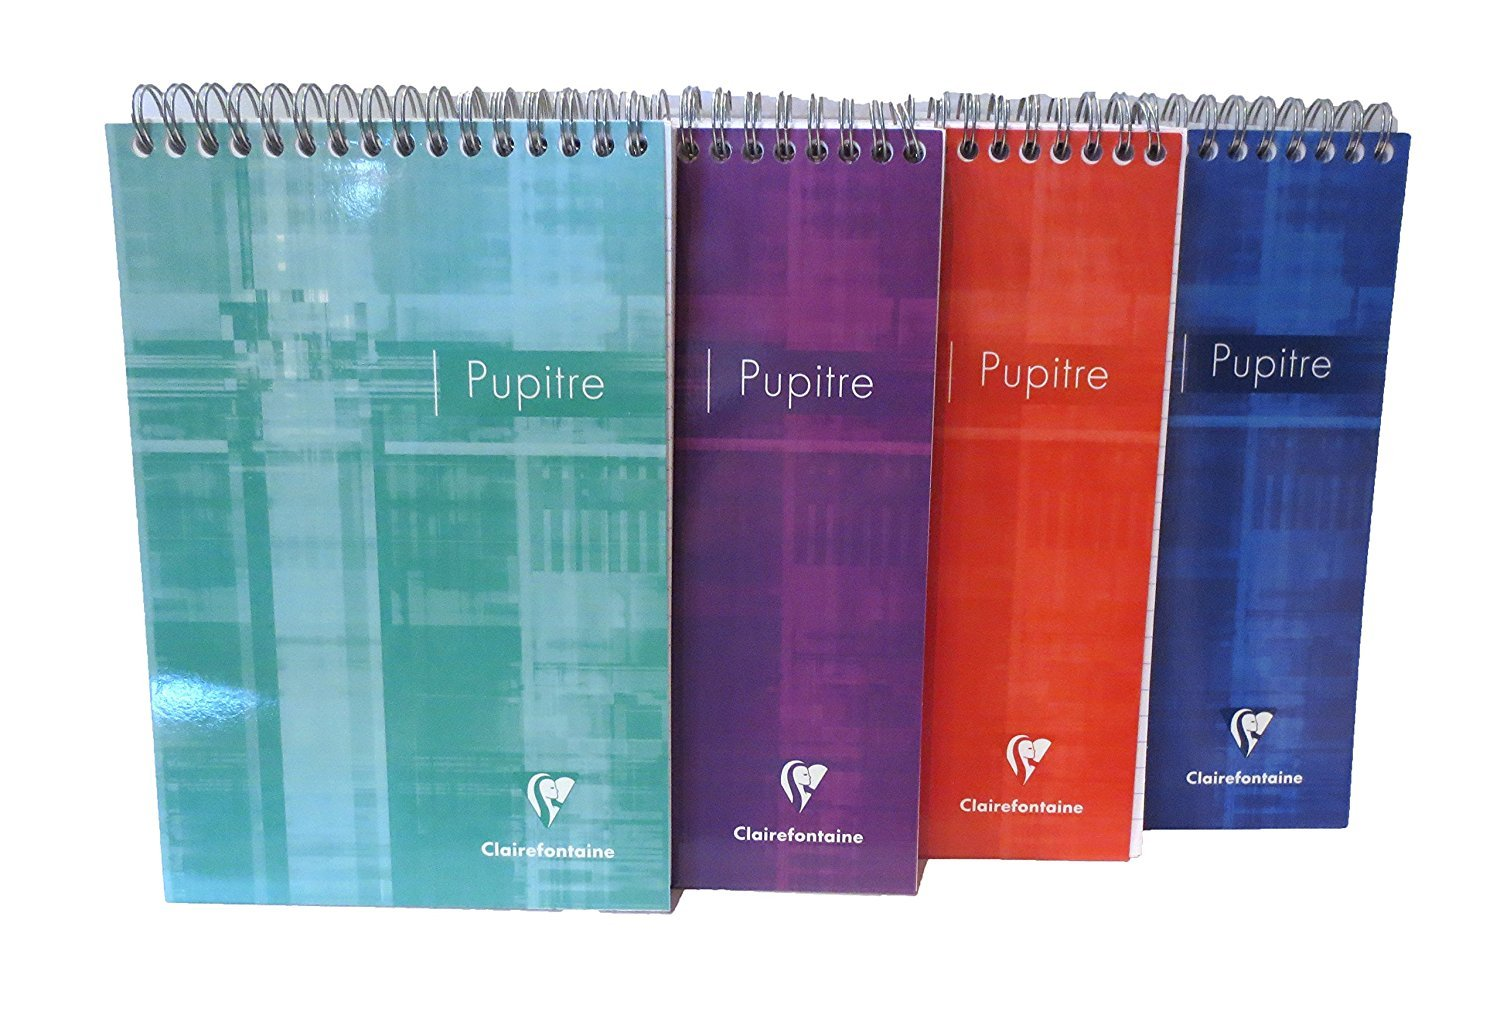 Pack of 3 Clairefontaine Wirebound Notepads (colors may vary) - lined - 5-3/4 in. x 8-1/4 in.